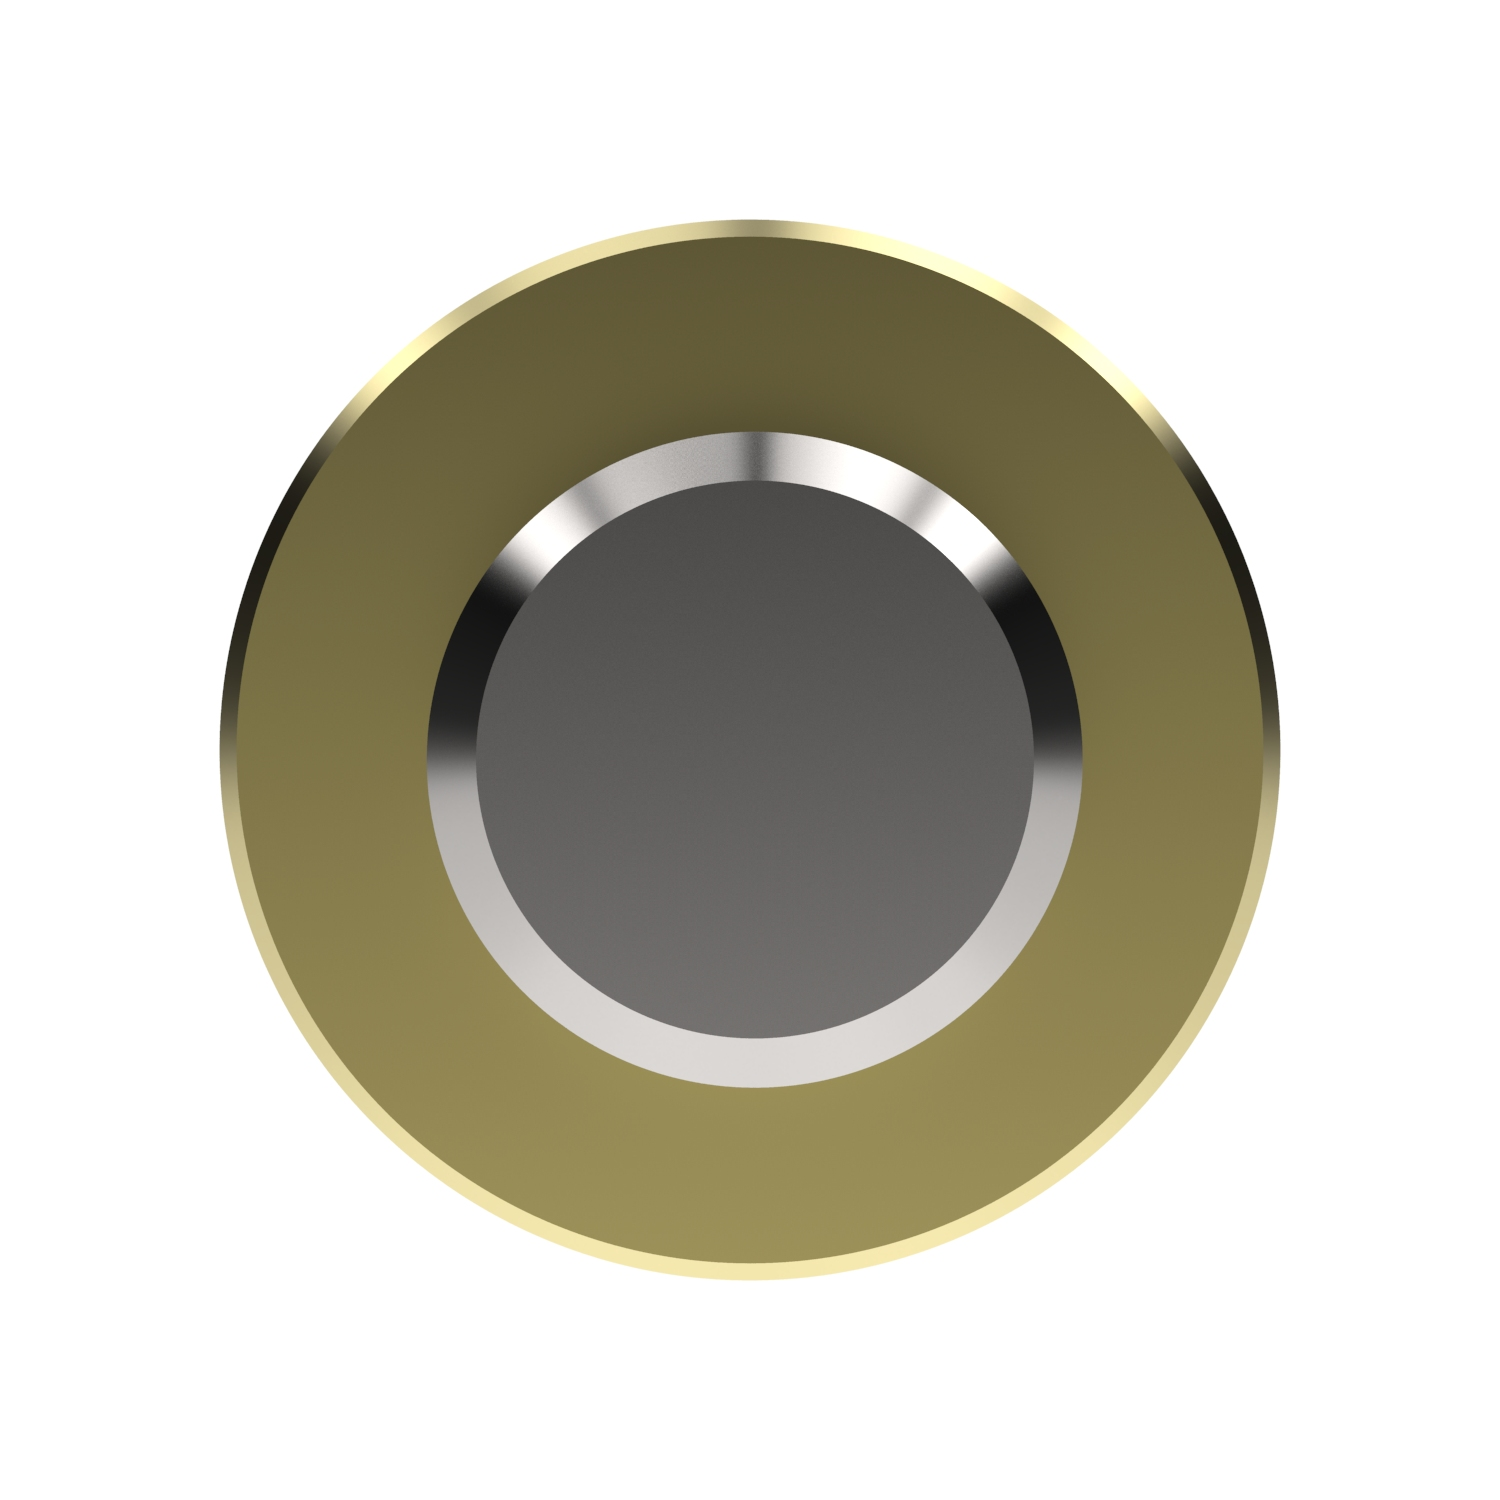 Acme Sleeve Nut - Bronze -6mm- 20mm LH